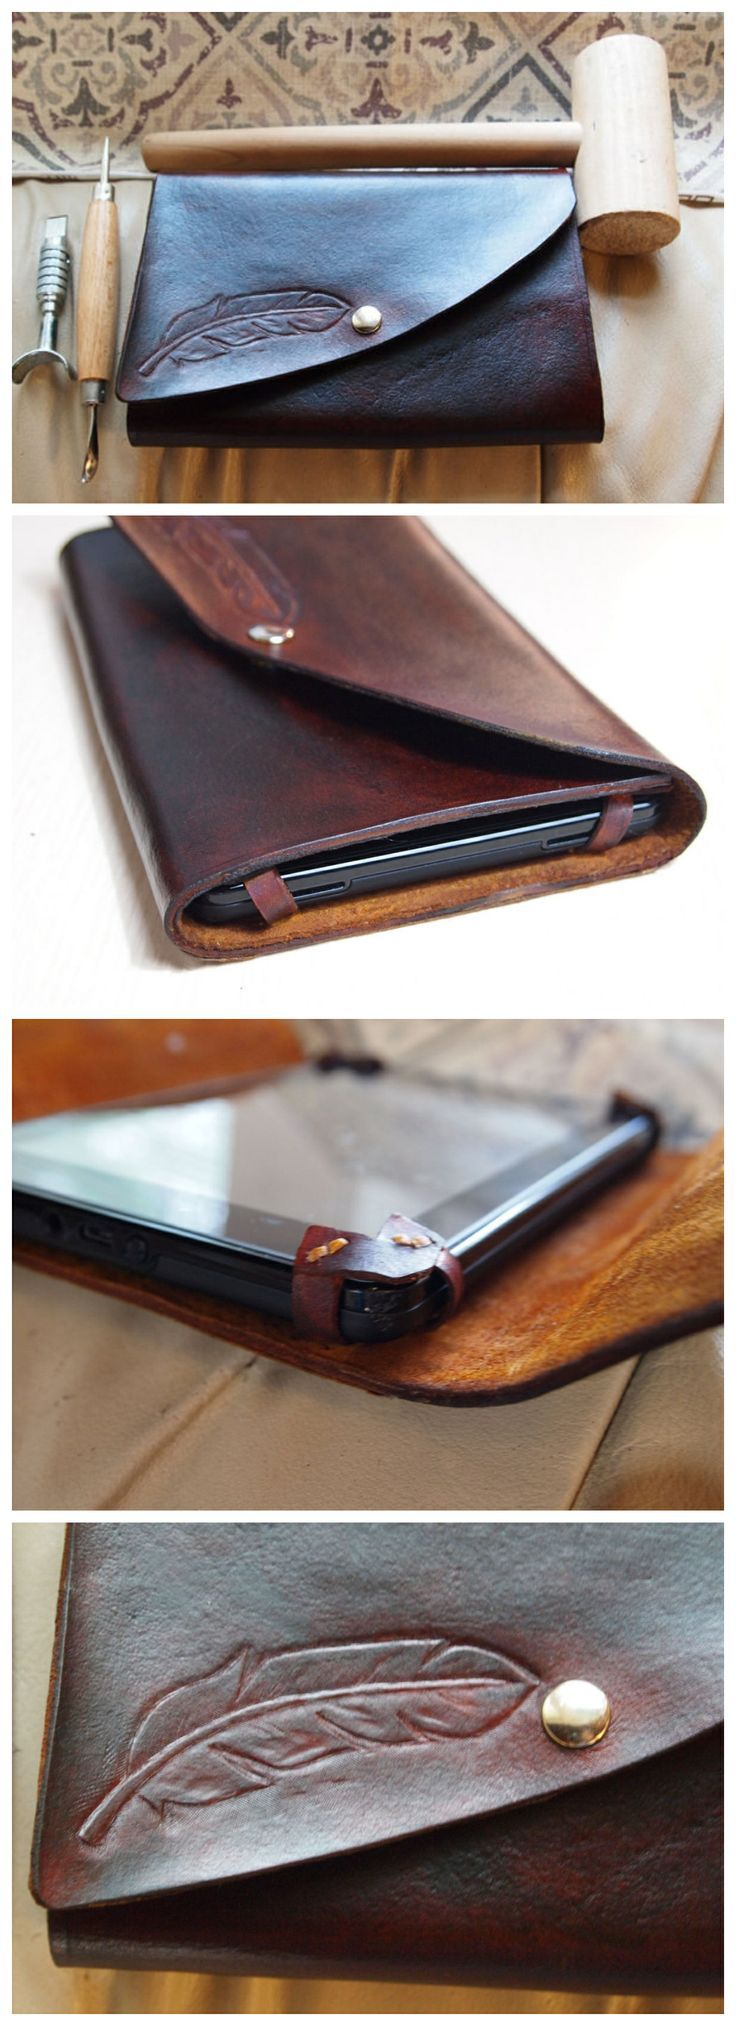 DIY Leather Tablet Case #leatherworking #accessory: